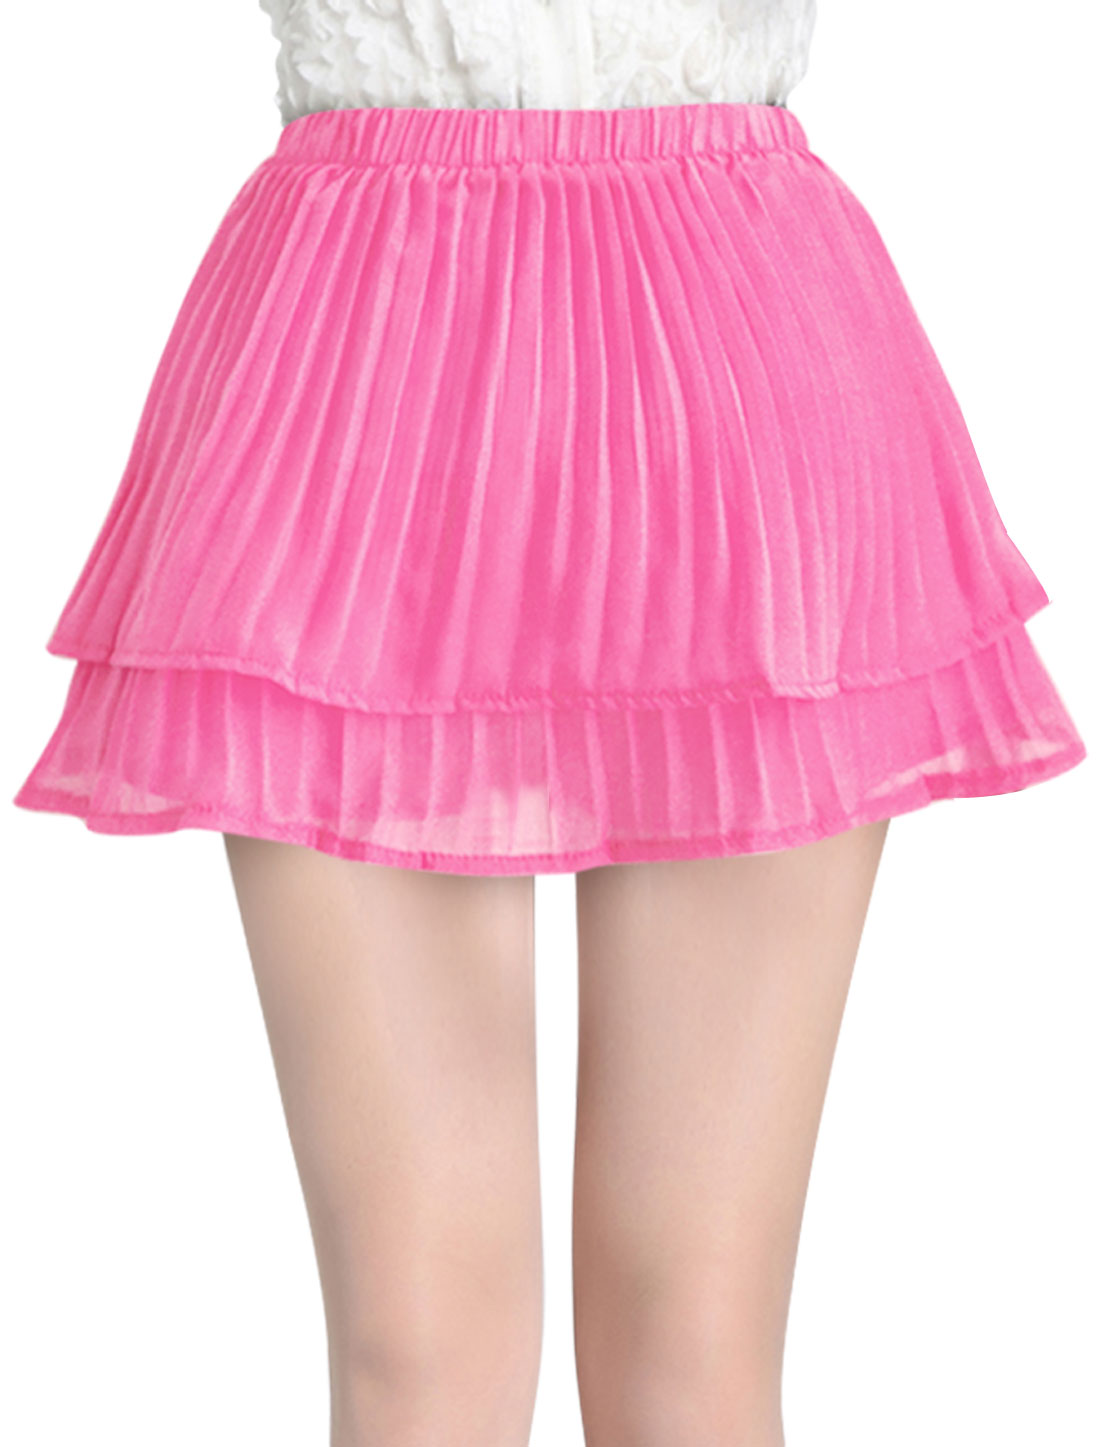 Lady NEW Elastic Waist Tiered Design Pleated Simple Skort Fuchsia XS